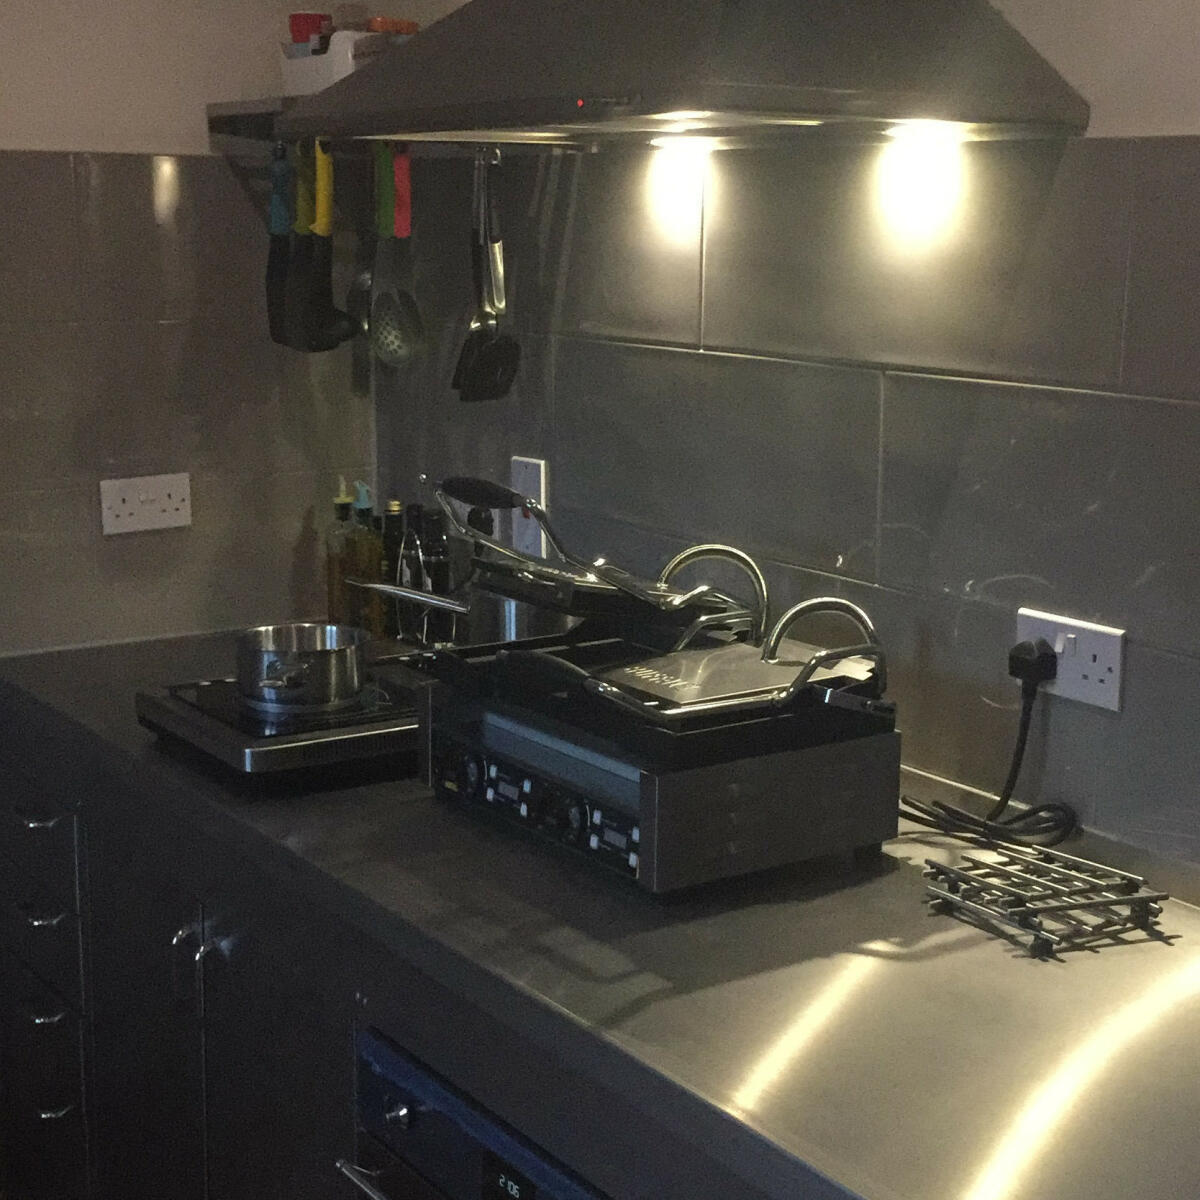 Professional Kitchens 5 star review on 18th January 2019